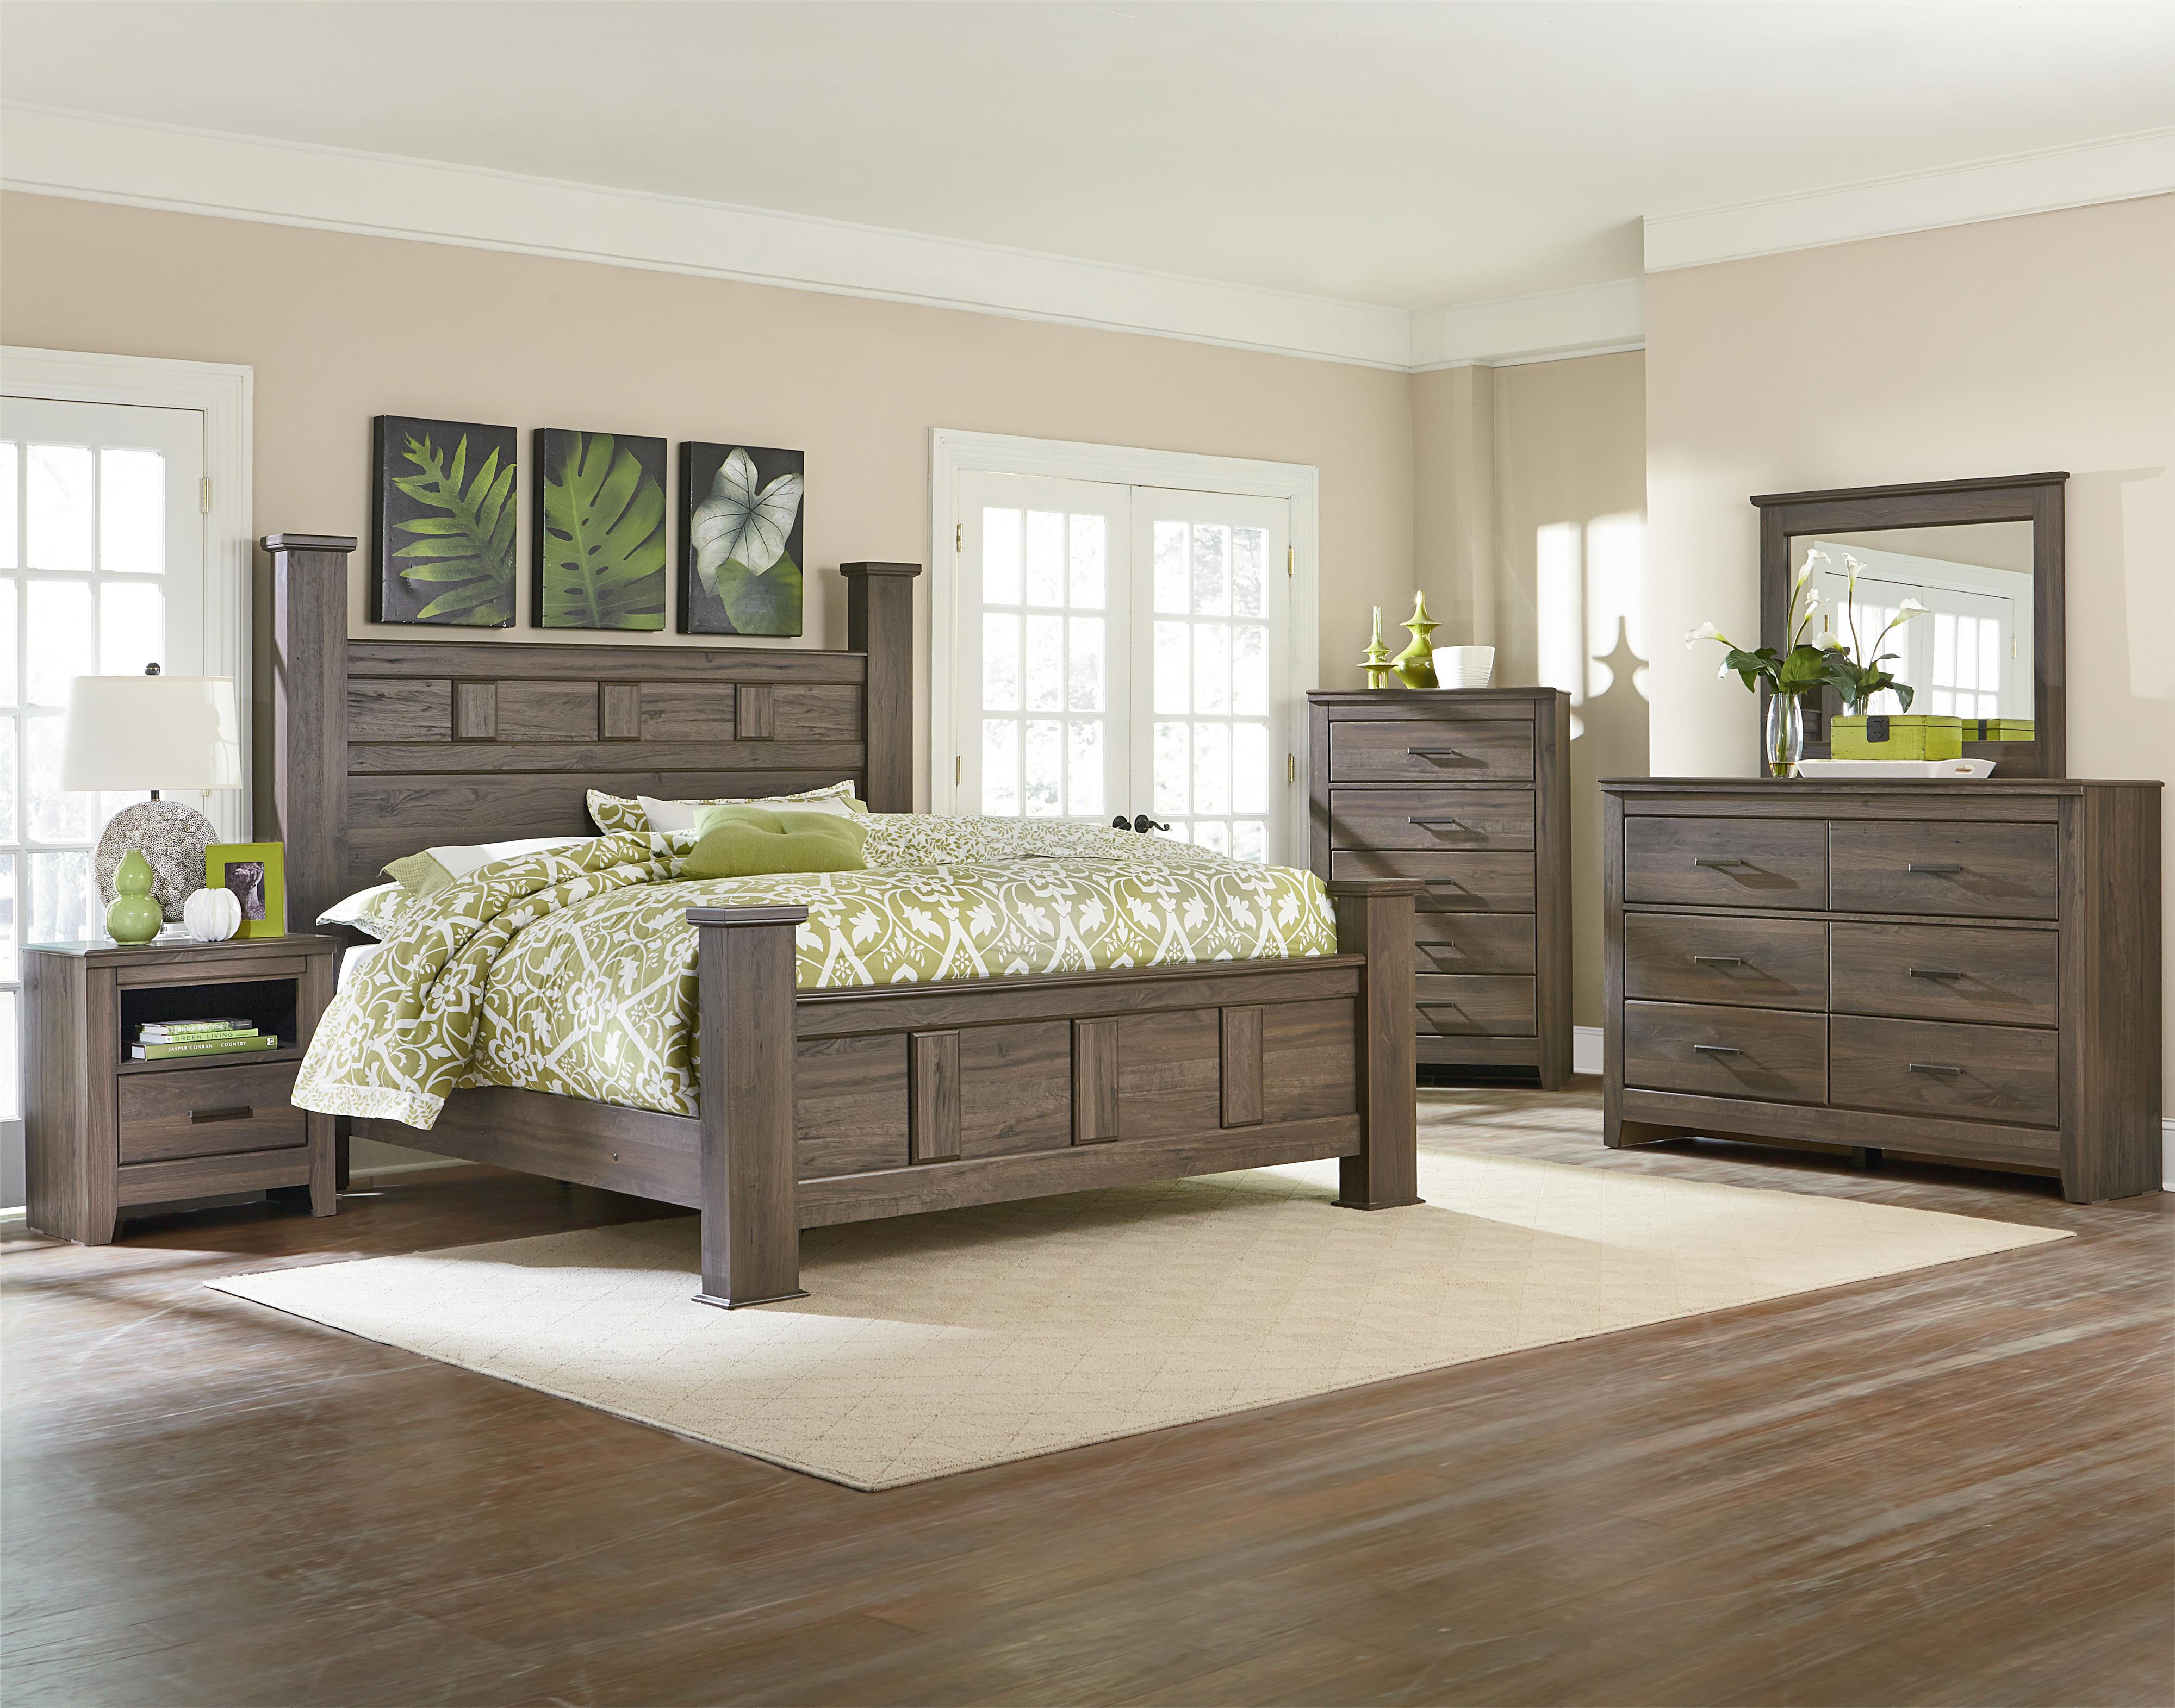 Standard Furniture Hayward Queen Bedroom Group - Item Number: 56510 Q Bedroom Group 1